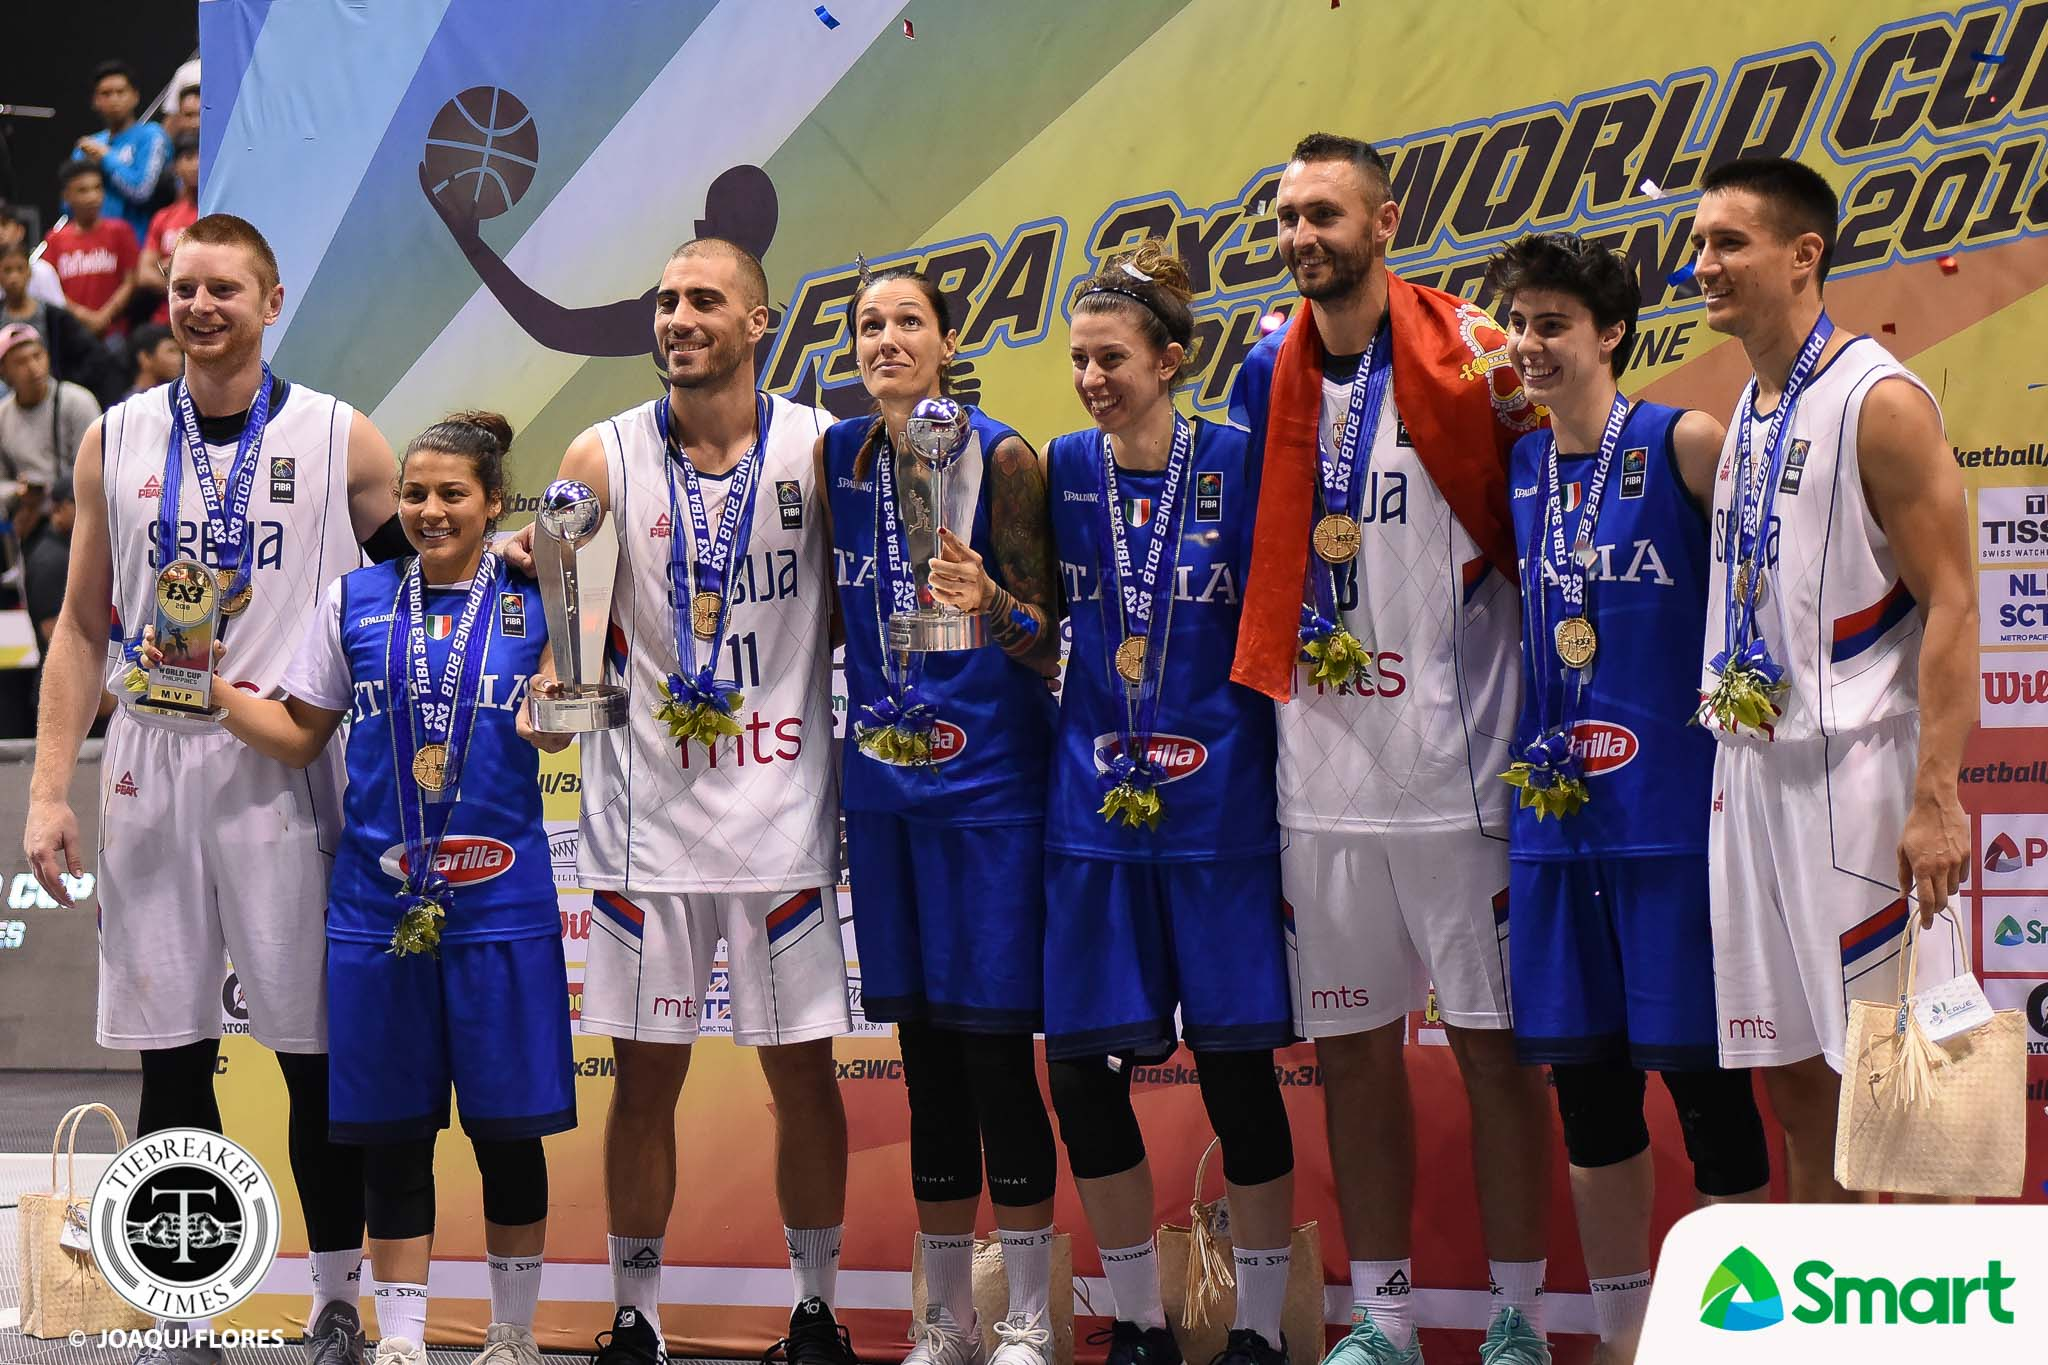 Tiebreaker Times Dusan Bulut, Rae Lin D'Alie named Tournament MVPs 2018 FIBA 3X3 World Cup 3x3 Basketball News  Rae Lin D'alie Michael Hicks Jiang Jiayin Jesper Jobse Dusan Bulut Anna Leshkovtseva 2018 FIBA 3x3 World Cup - Women's 2018 FIBA 3X3 World Cup - Men's